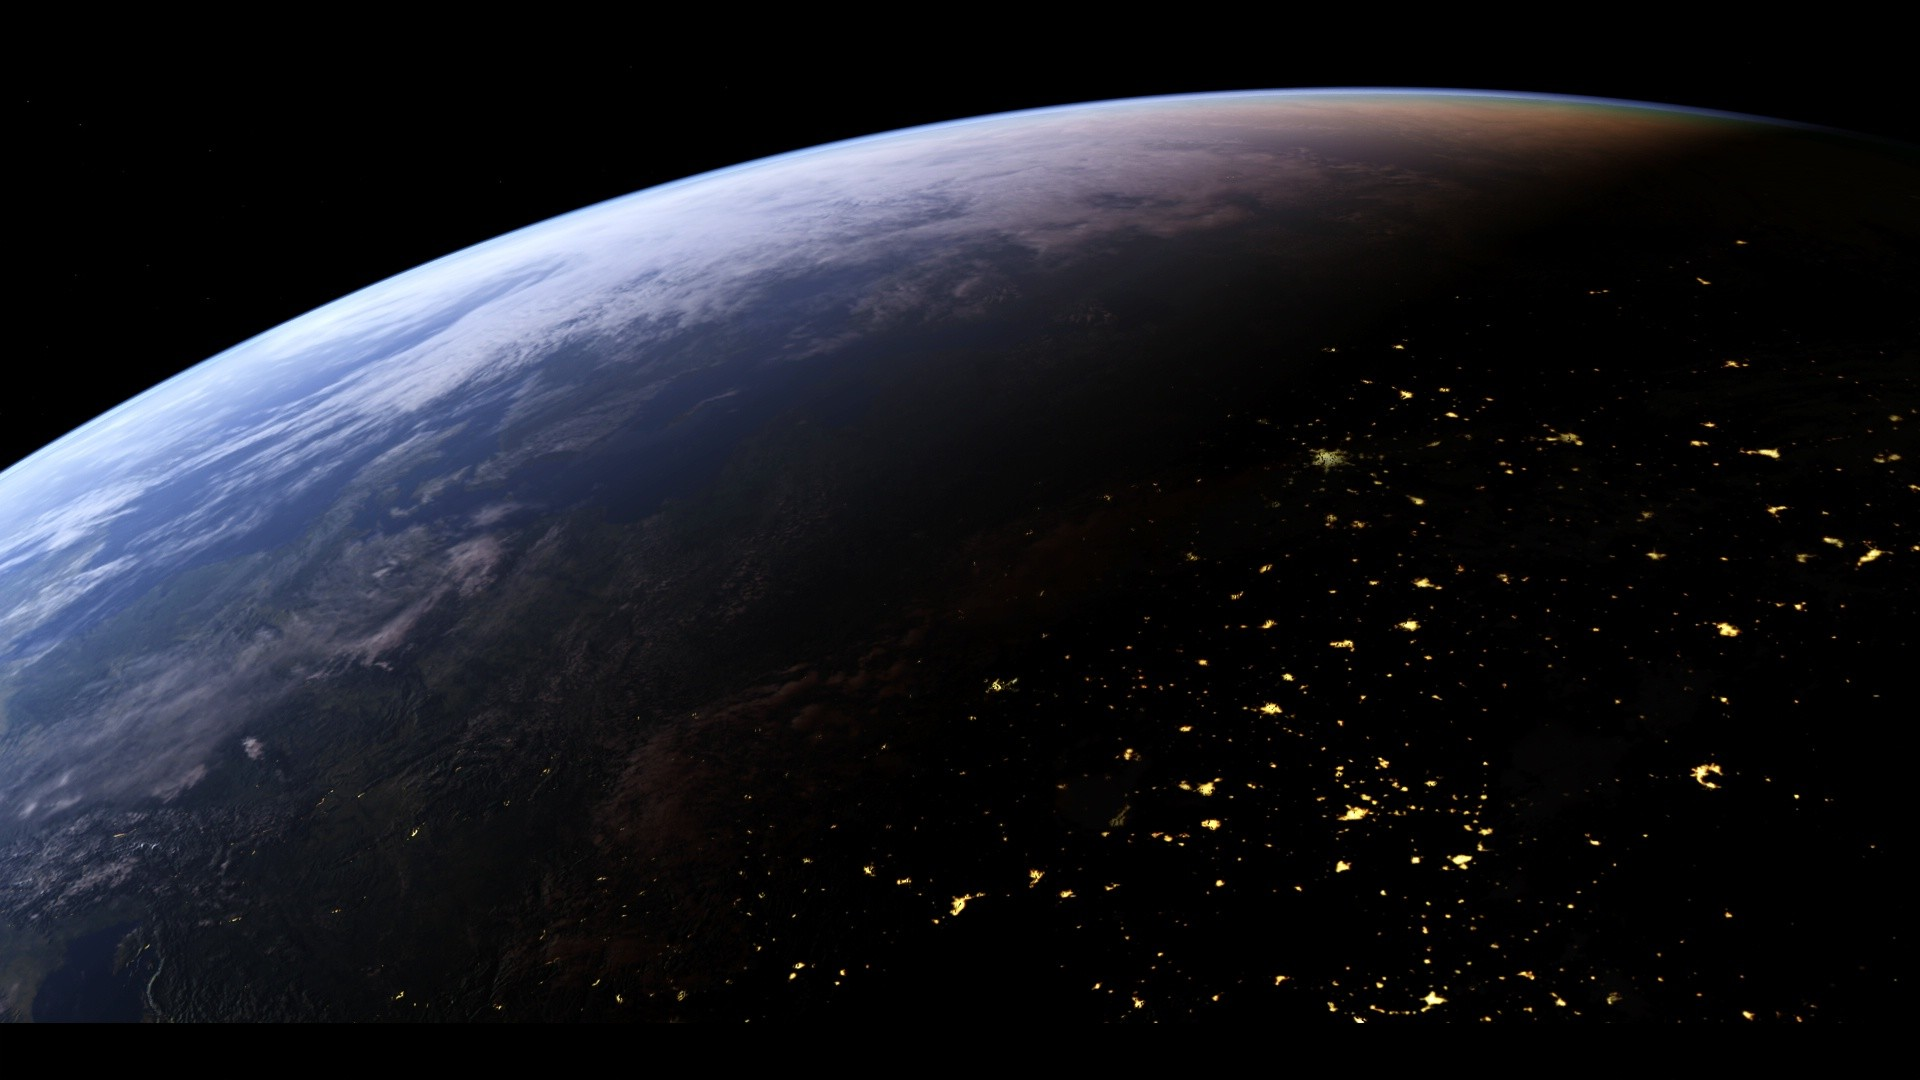 planet earth from space - HD1920×1080